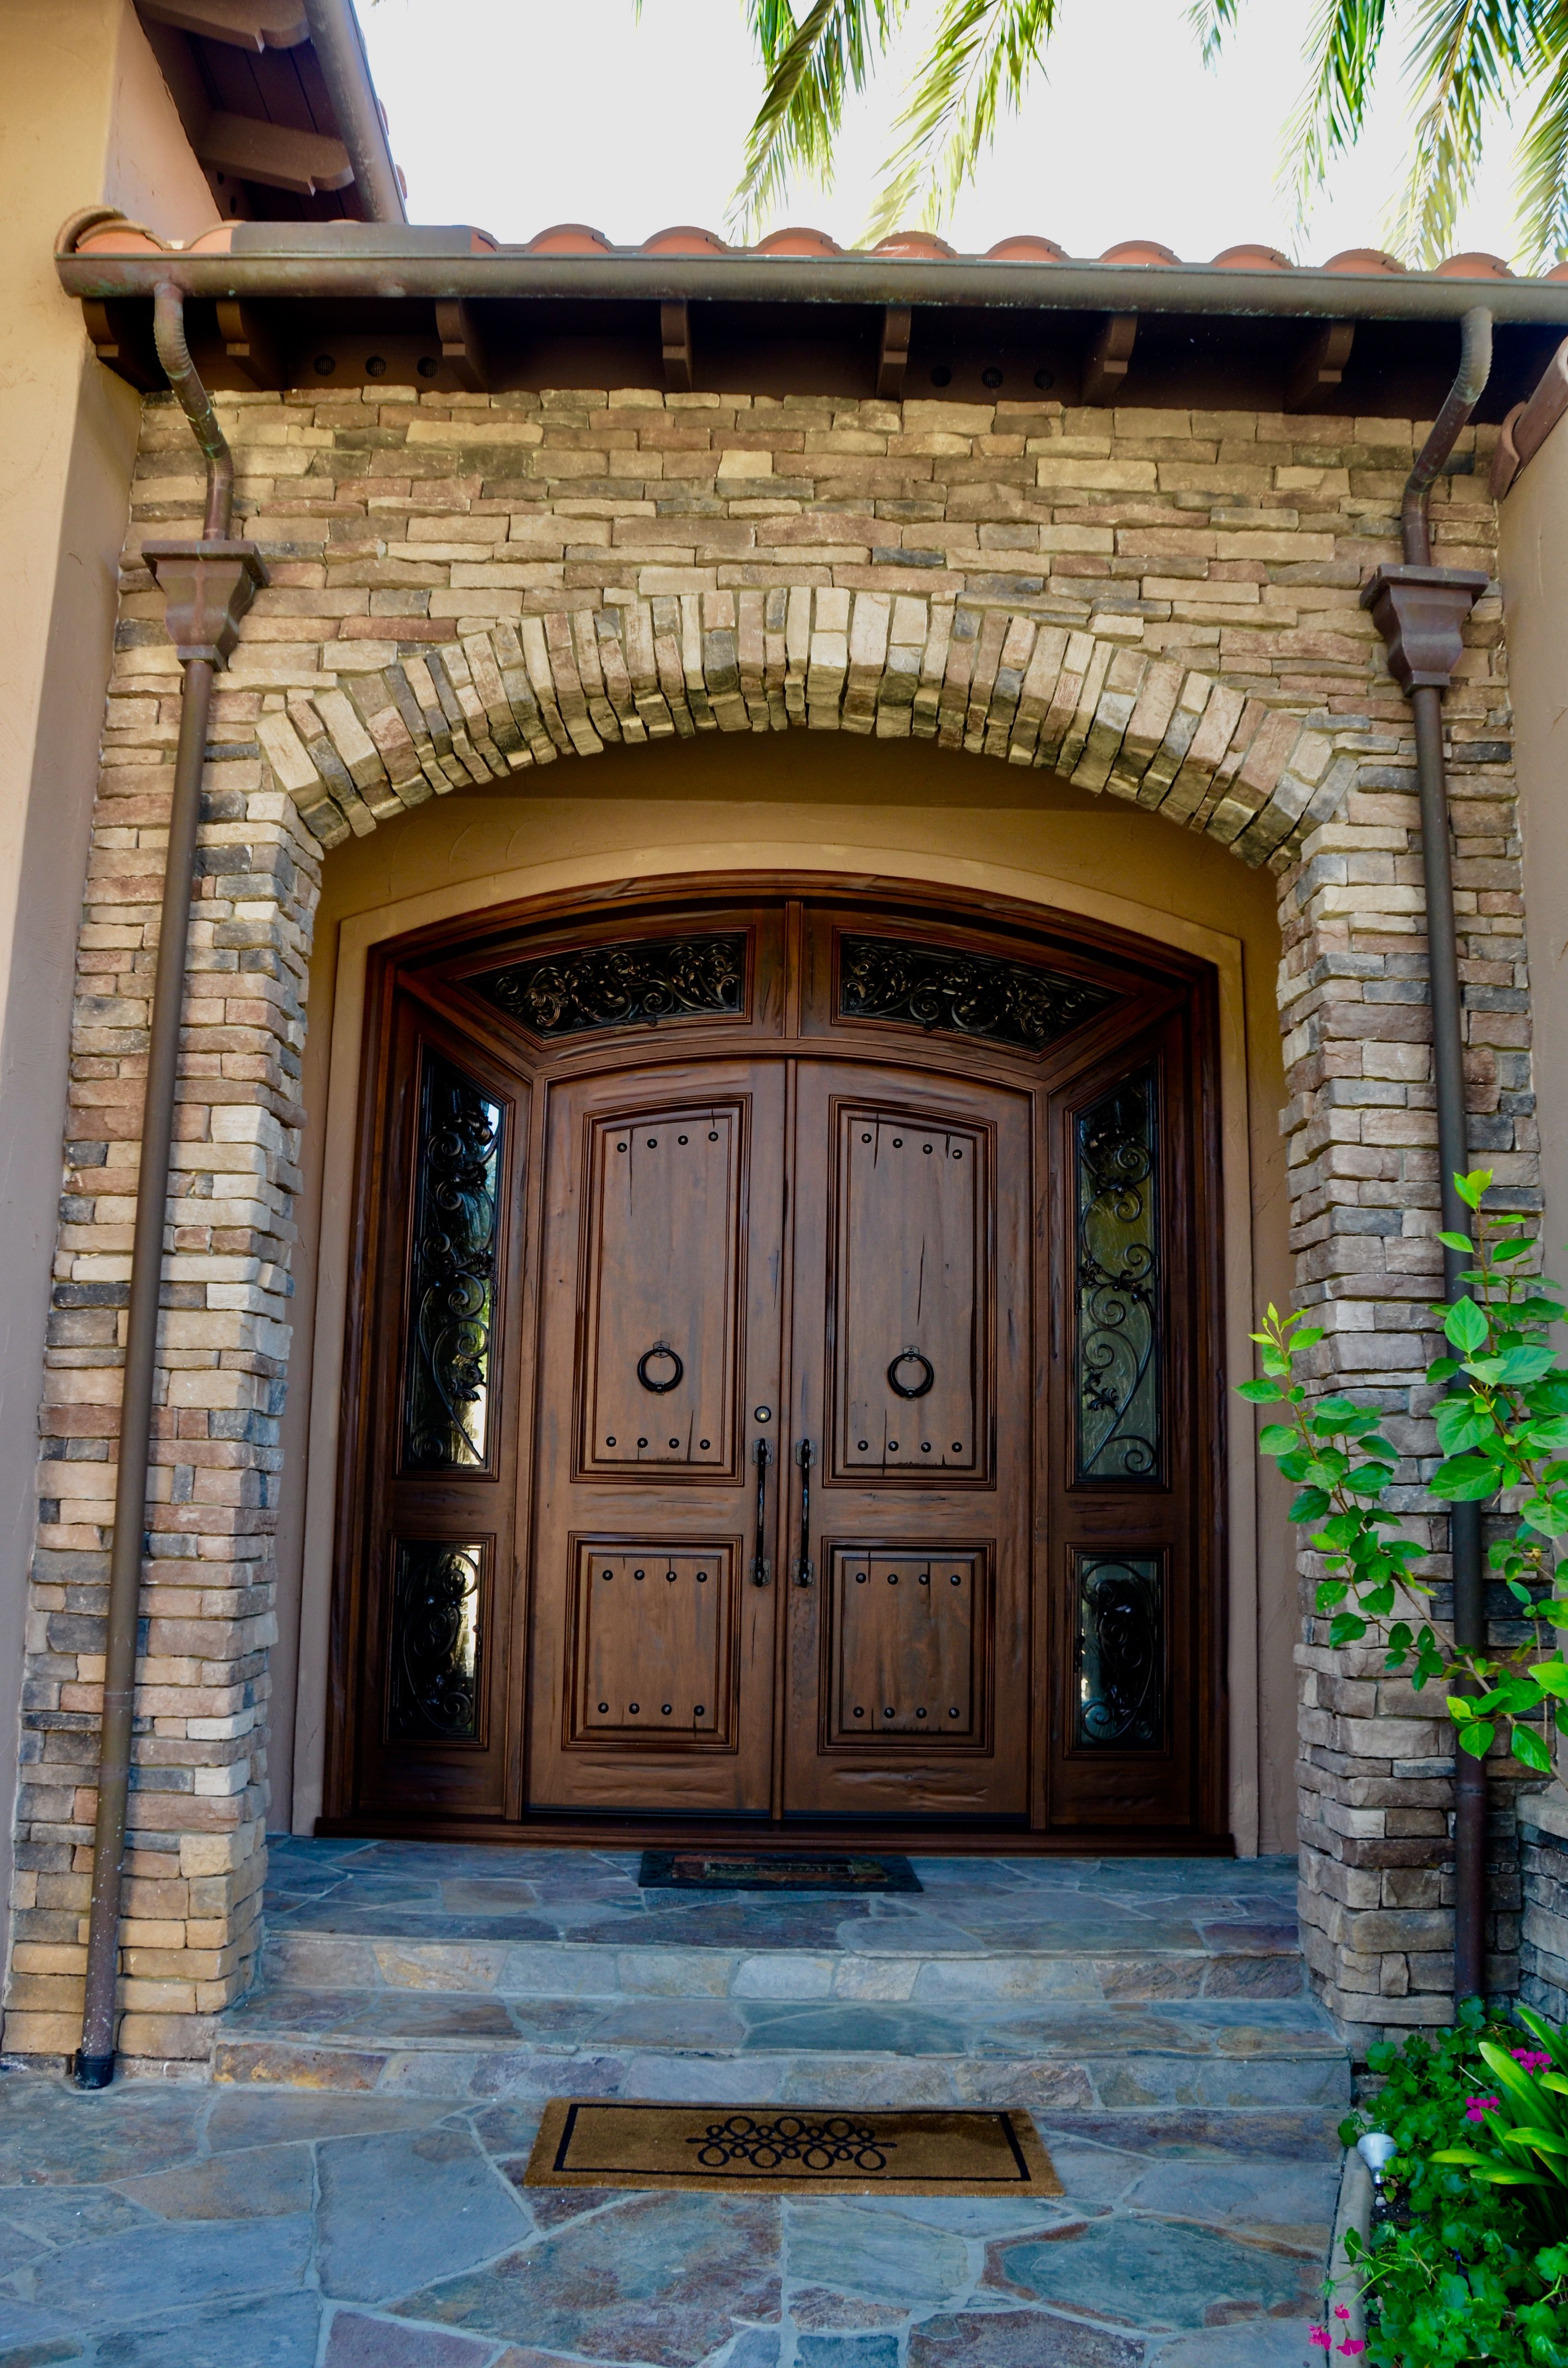 This Is A Grand Entrance San Diego Ca French Courtyard Custom Wood Doors Architectural Elements